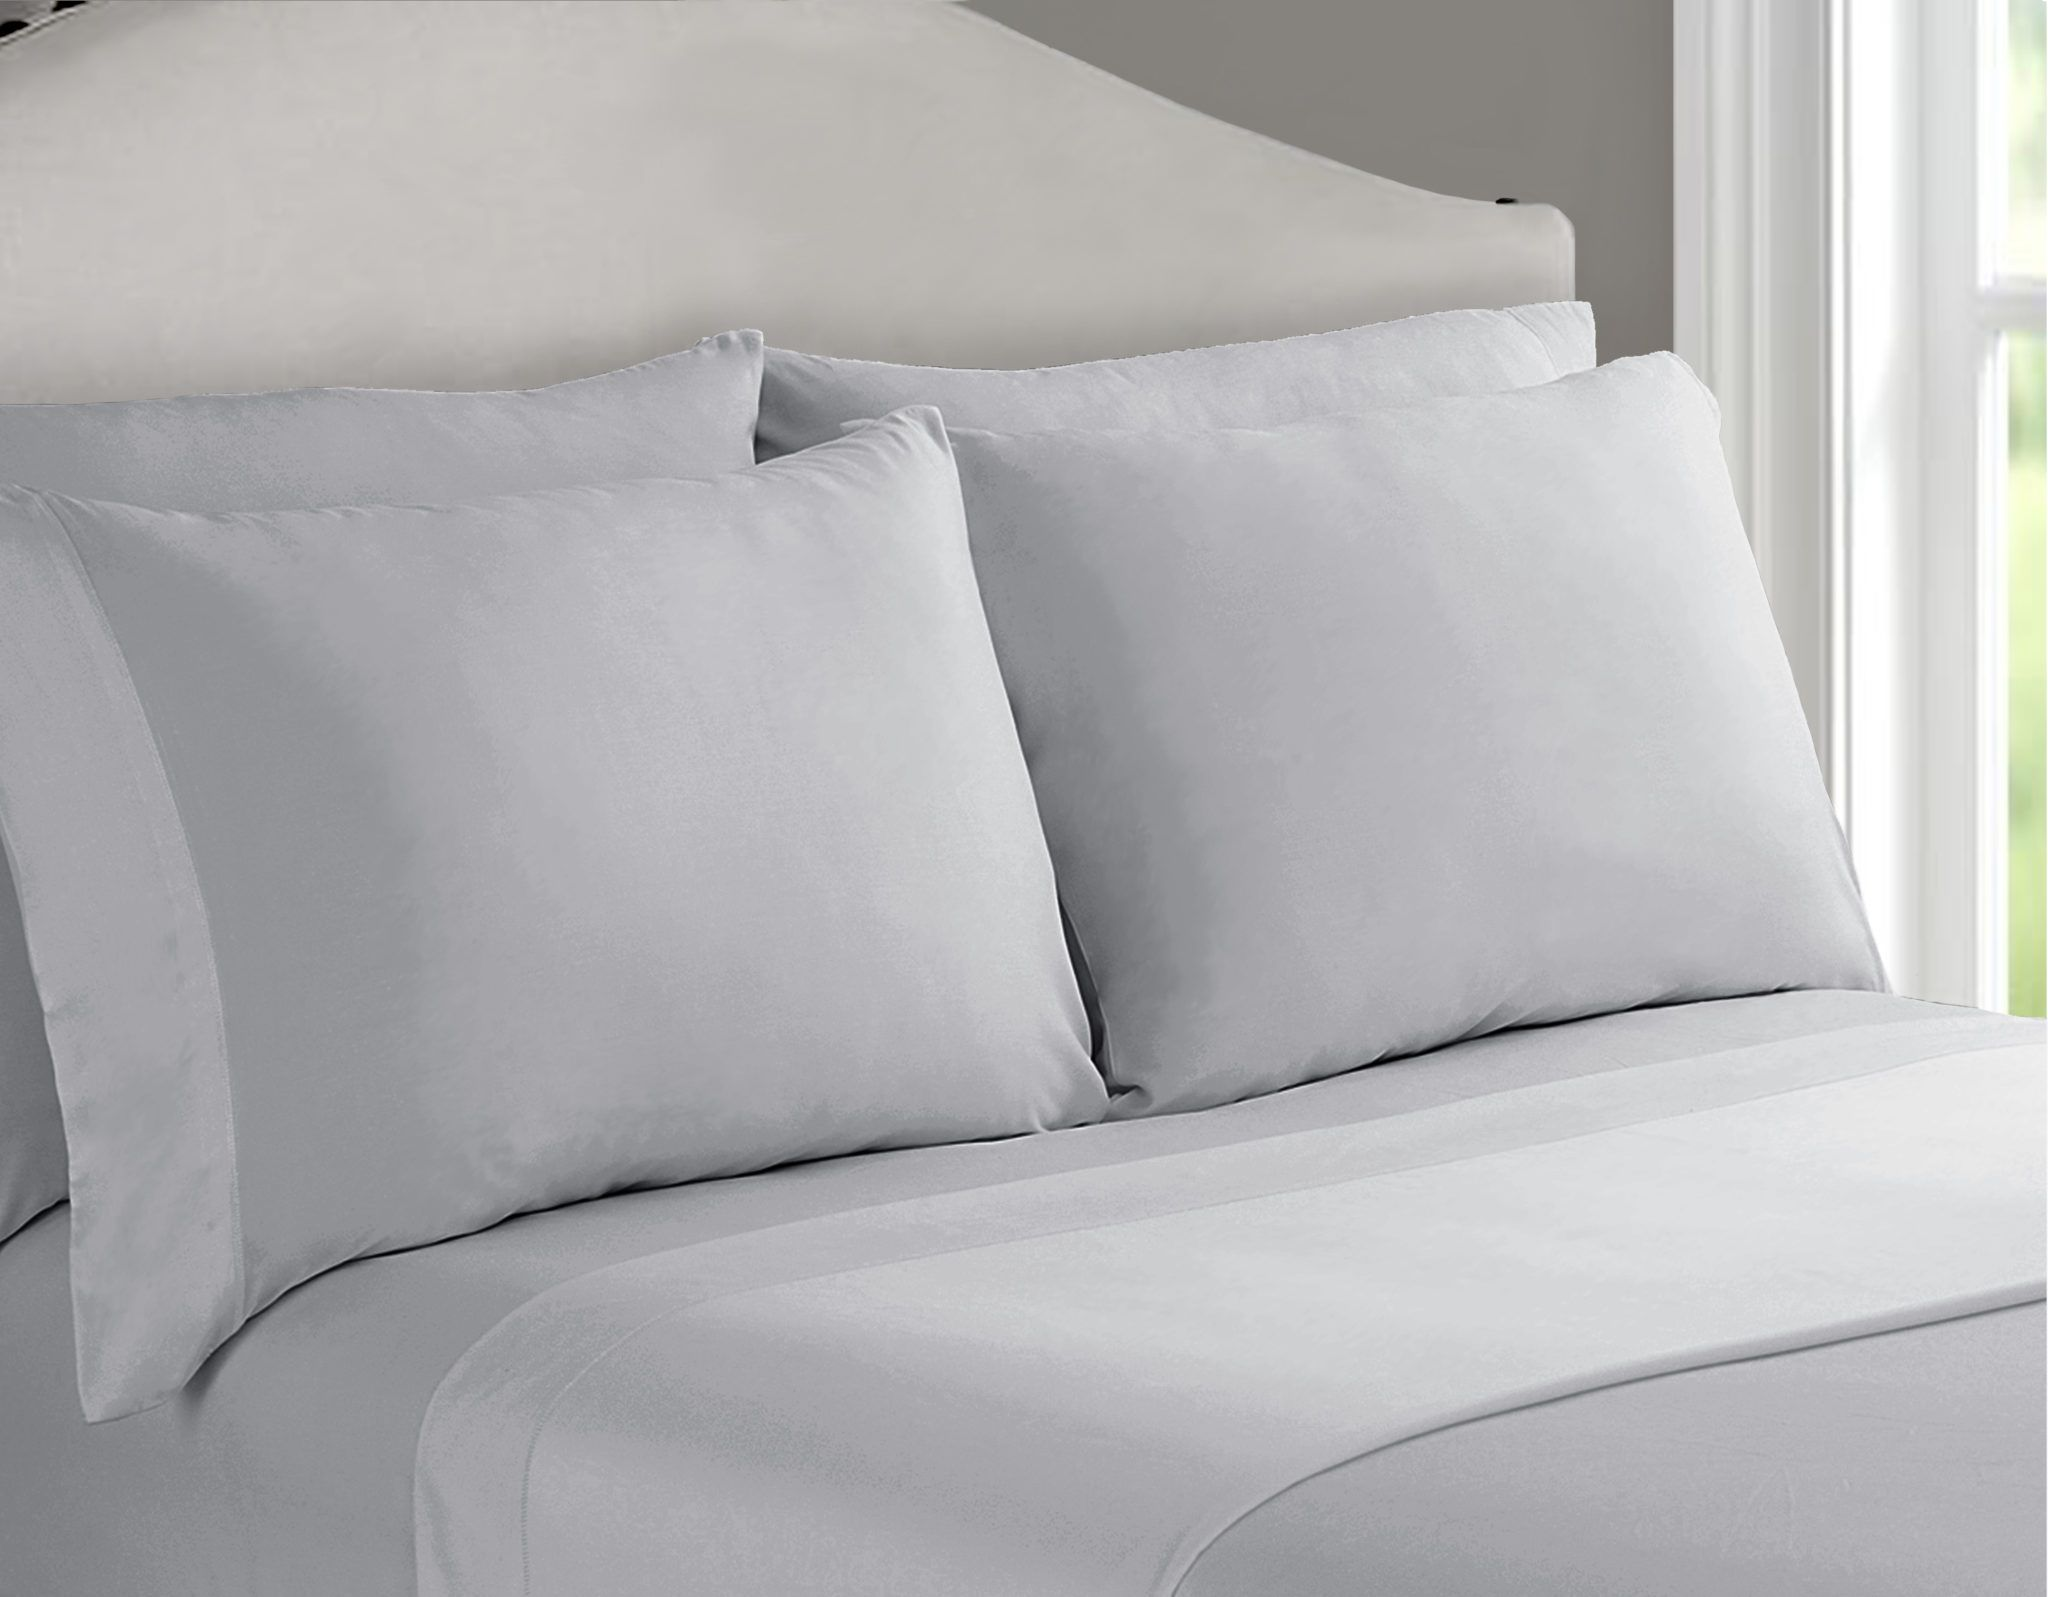 Bamboo Sheets With Images Bamboo Sheets Sheet Thread Count